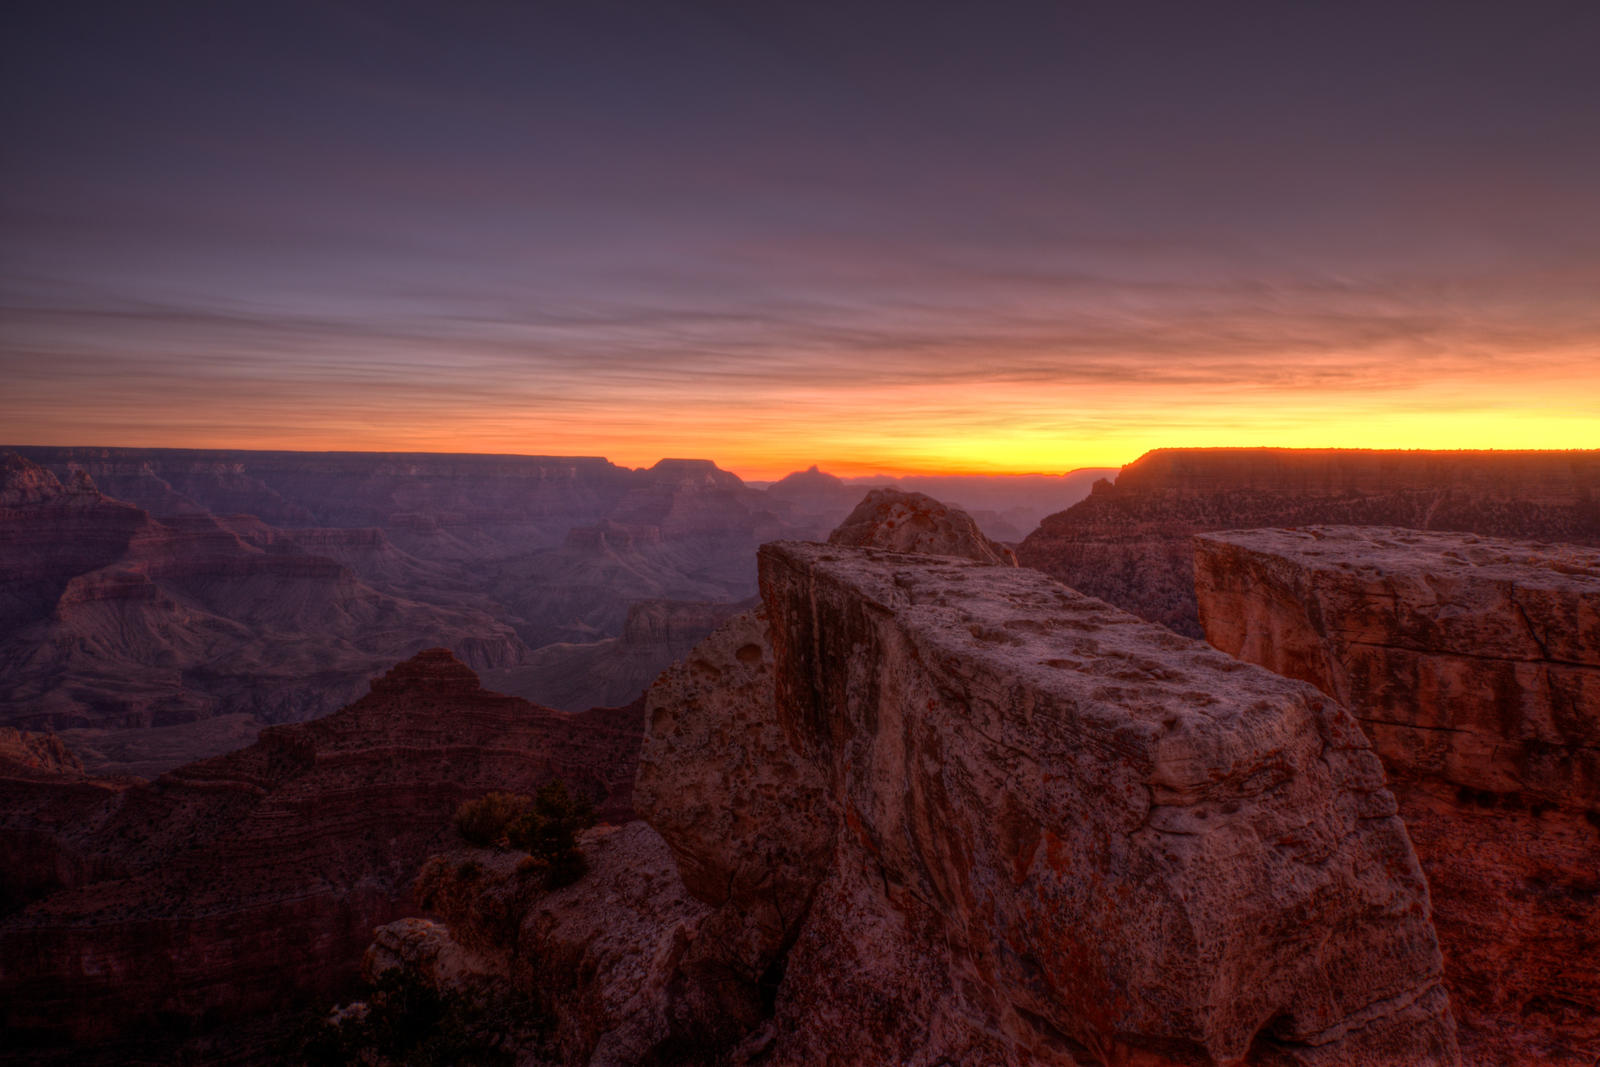 Canyon Sunrise by wmandra